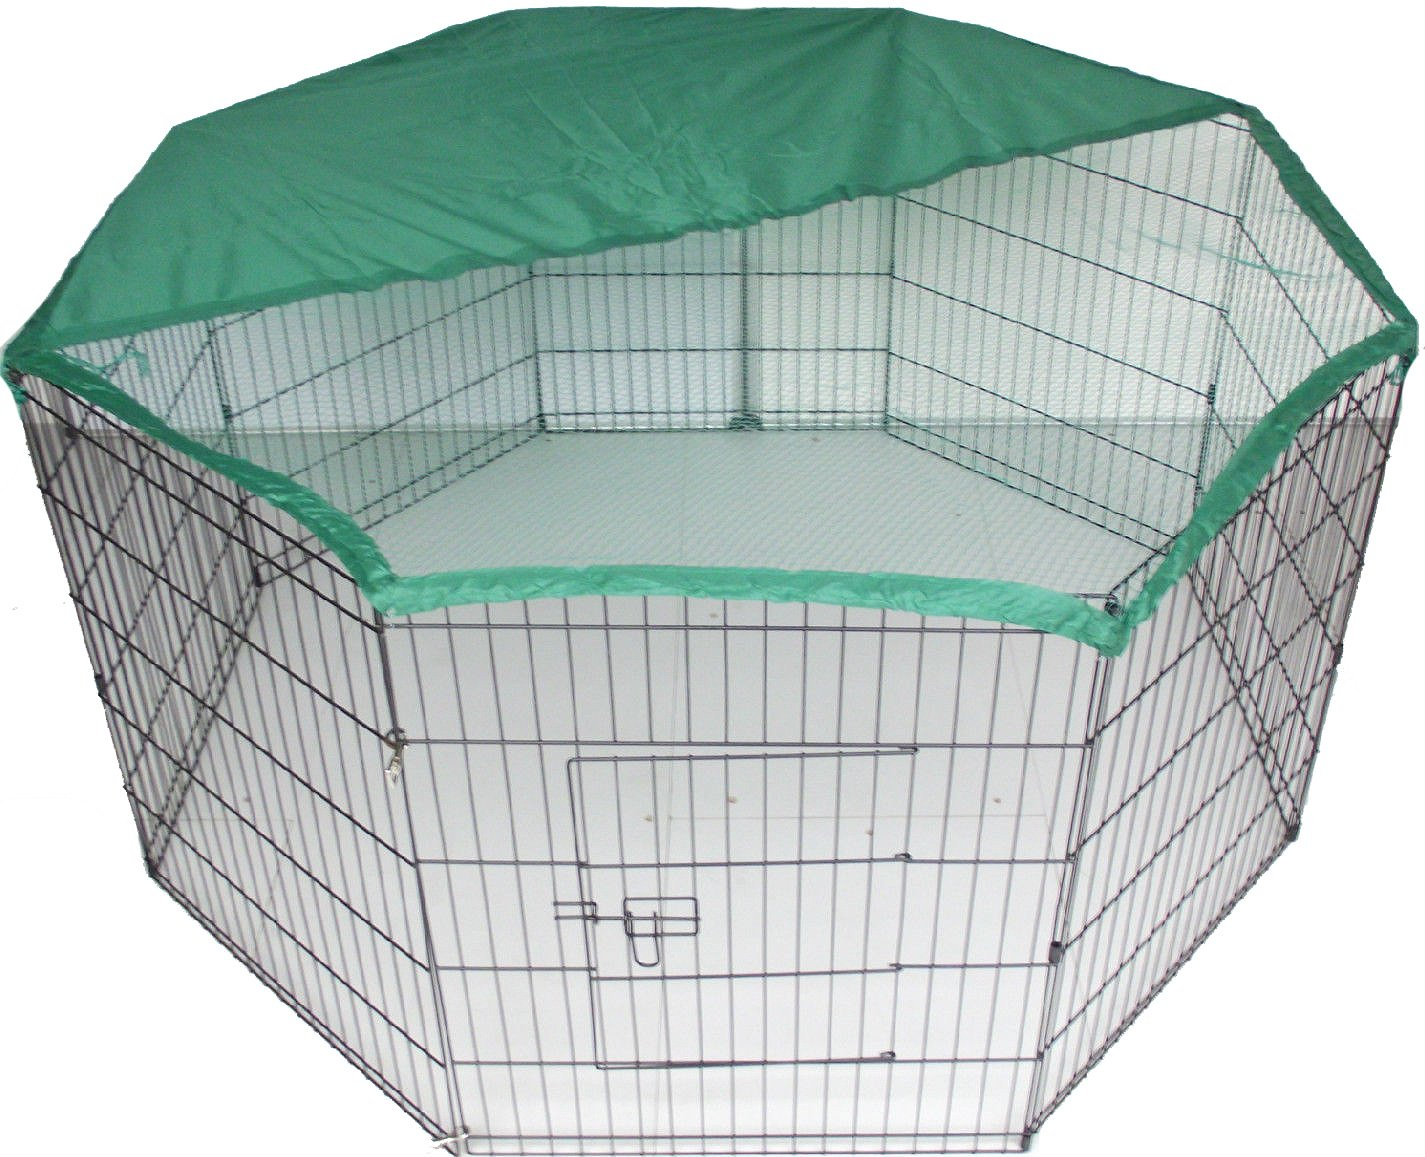 BUNNY BUSINESS Bunny/Rabbit/Guinea Pig/Dog/Puppy/Cat/Playpen Pen ...